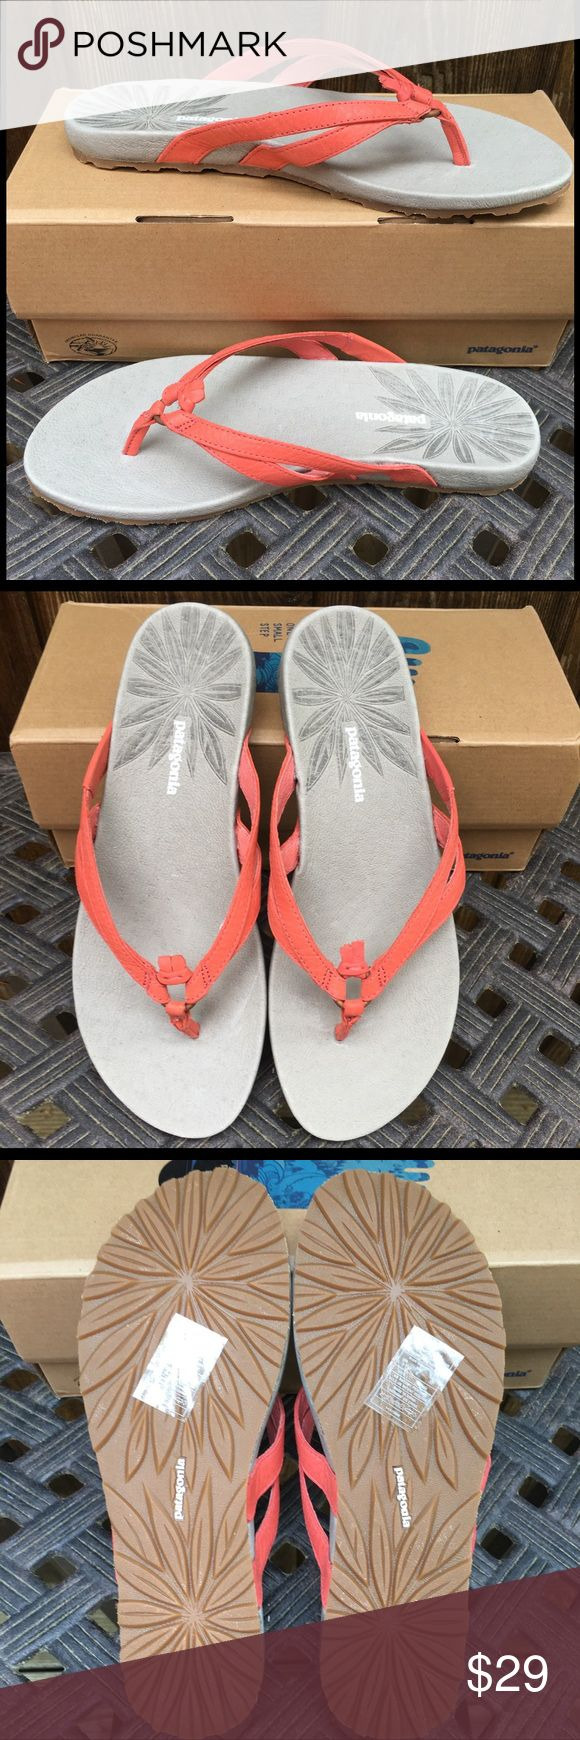 New Item- NIB Patagonia Women's Poli Sandals NIB Patagonia Poli Thong in Coral. Leather,  Rubber sole, Thong slide sandal featuring leather straps that knot around metal ring at toe post.  Size: 7 Patagonia Shoes Sandals